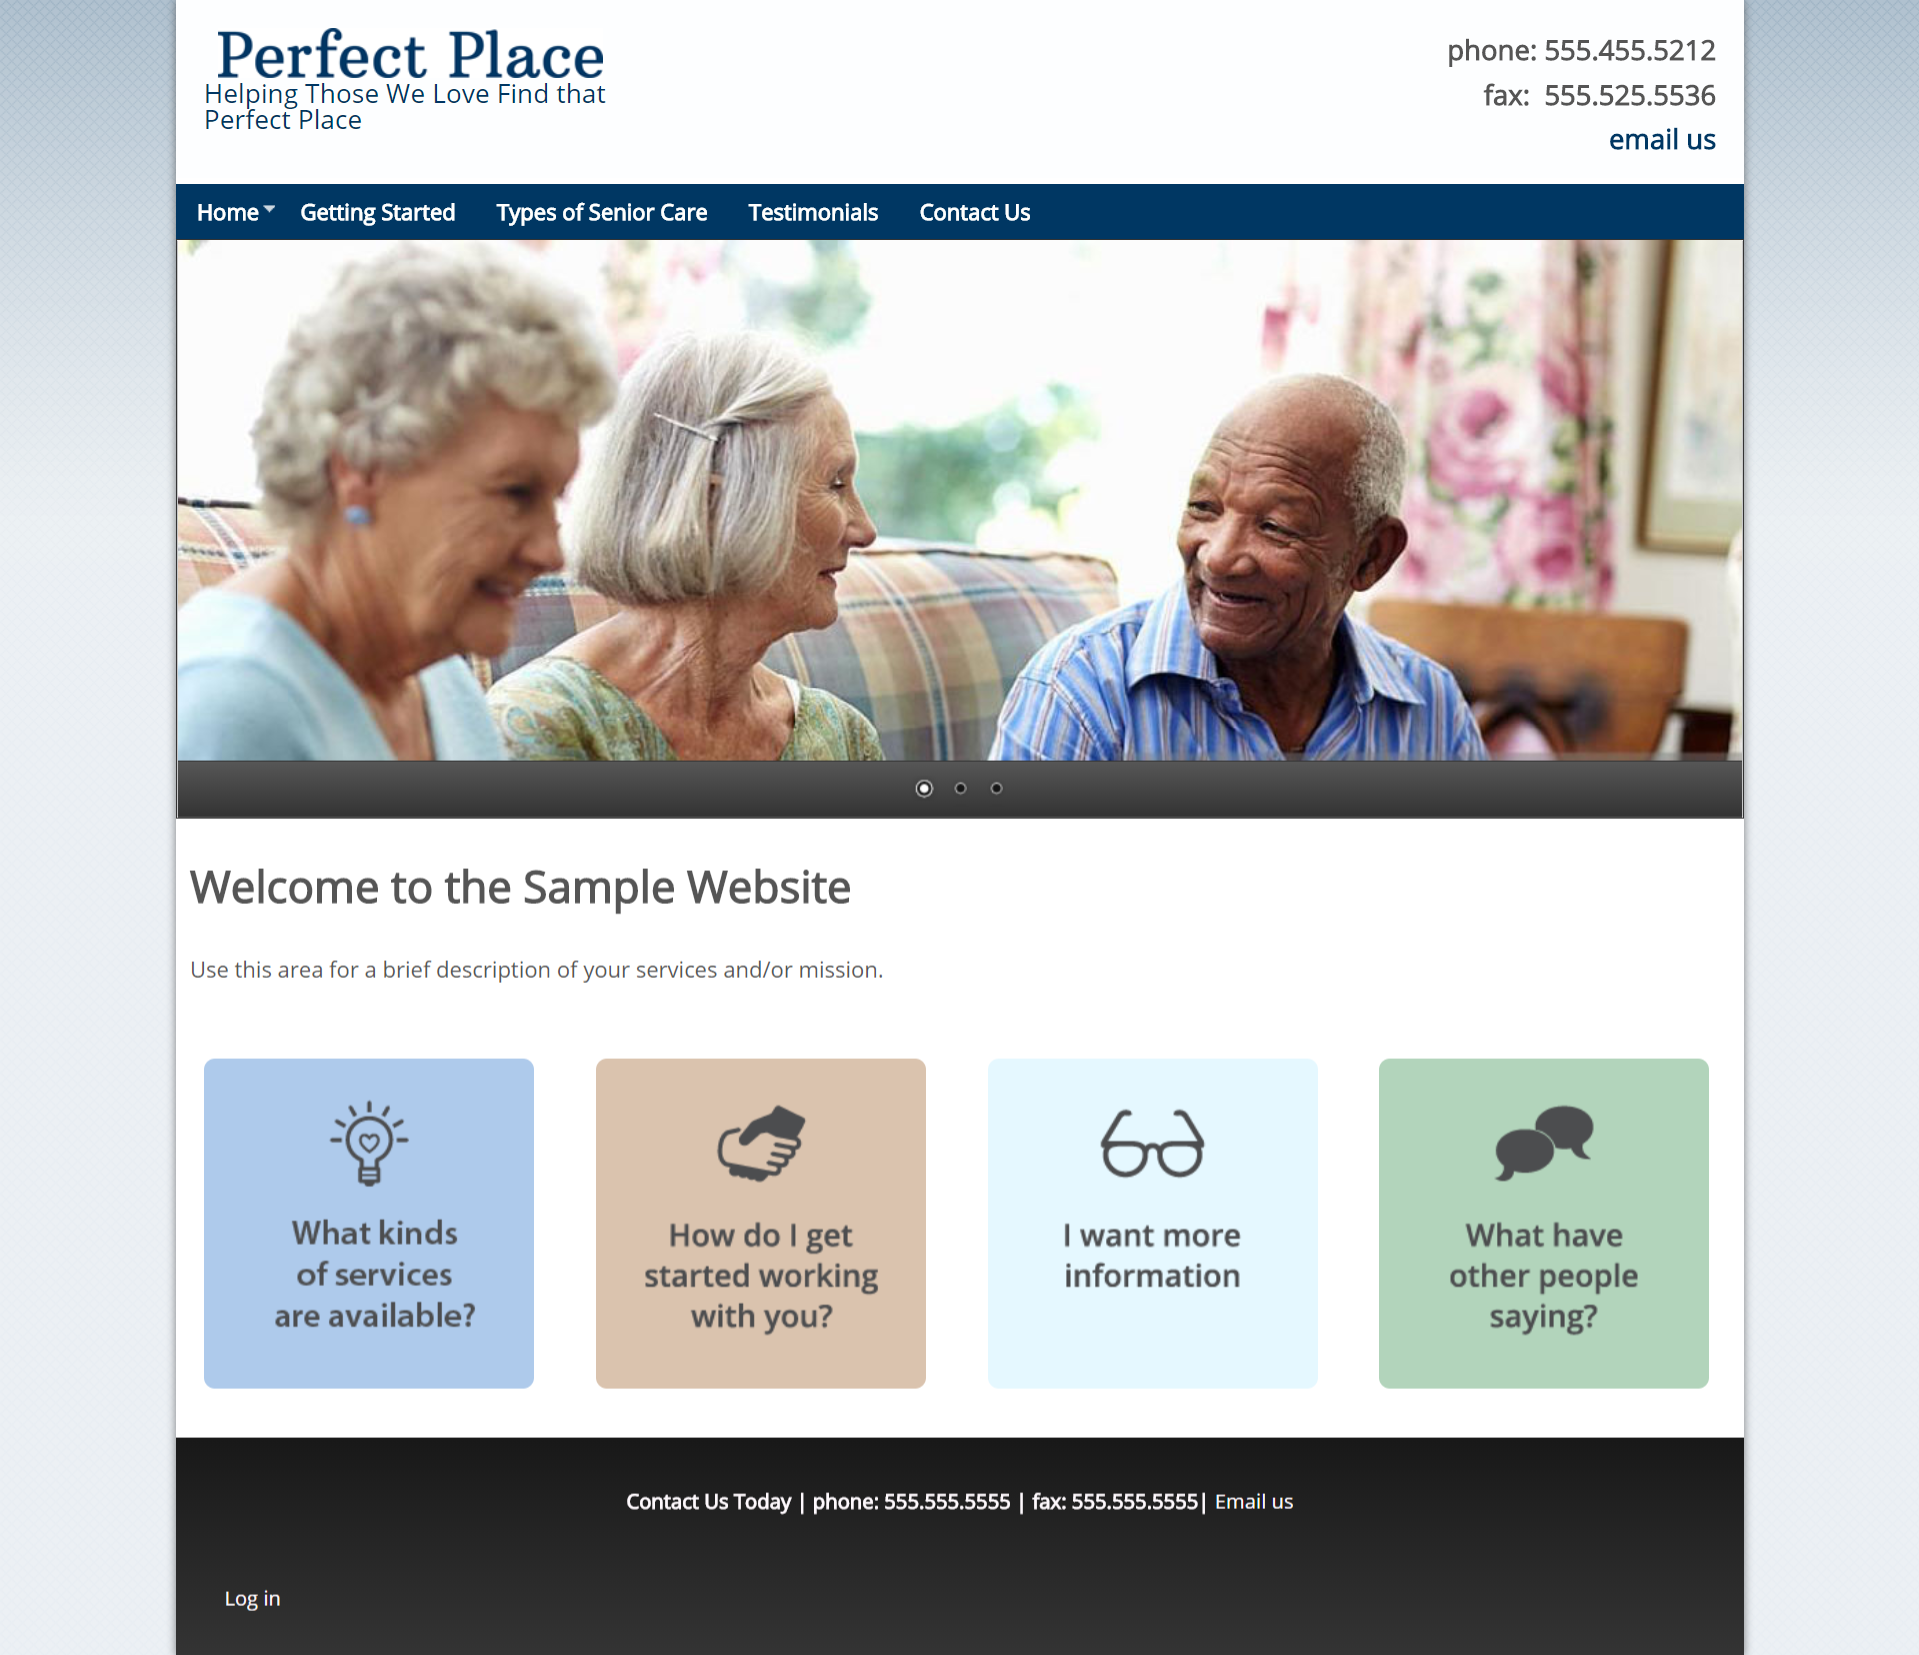 Perfect Place Sample site screenshot